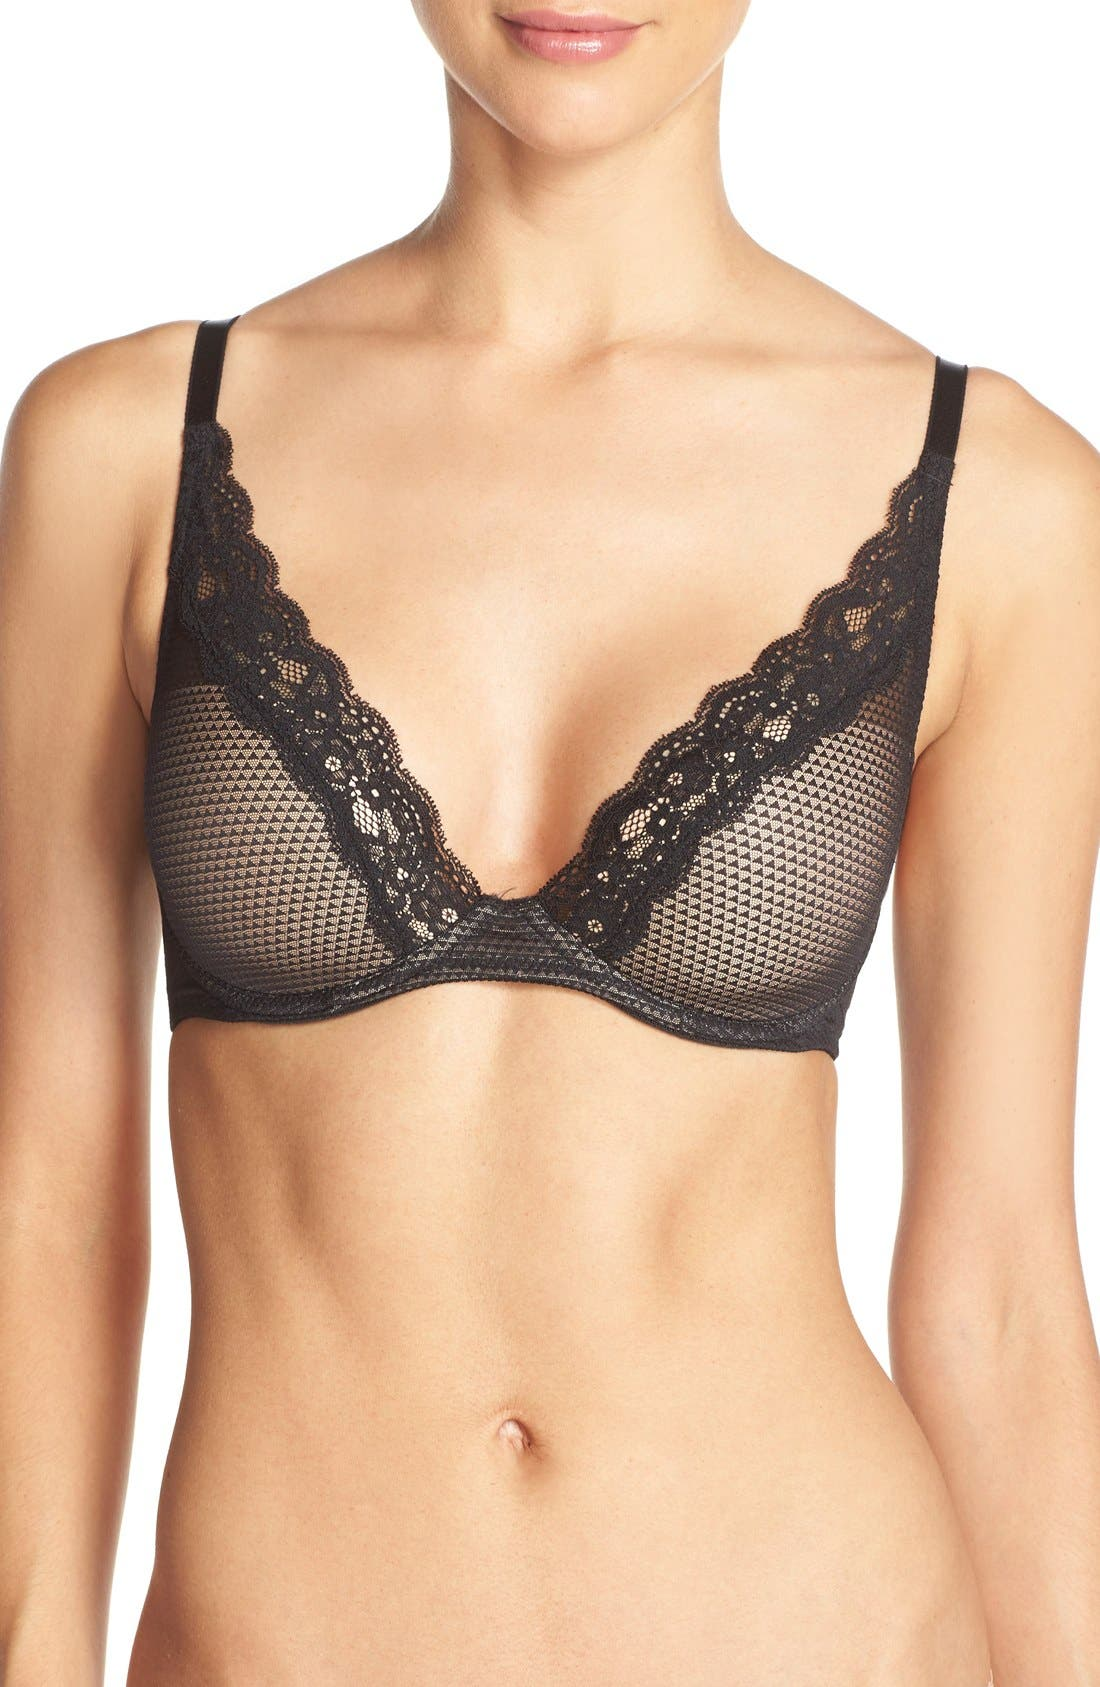 'Brooklyn' Underwire T-Shirt Bra,                             Main thumbnail 1, color,                             Black